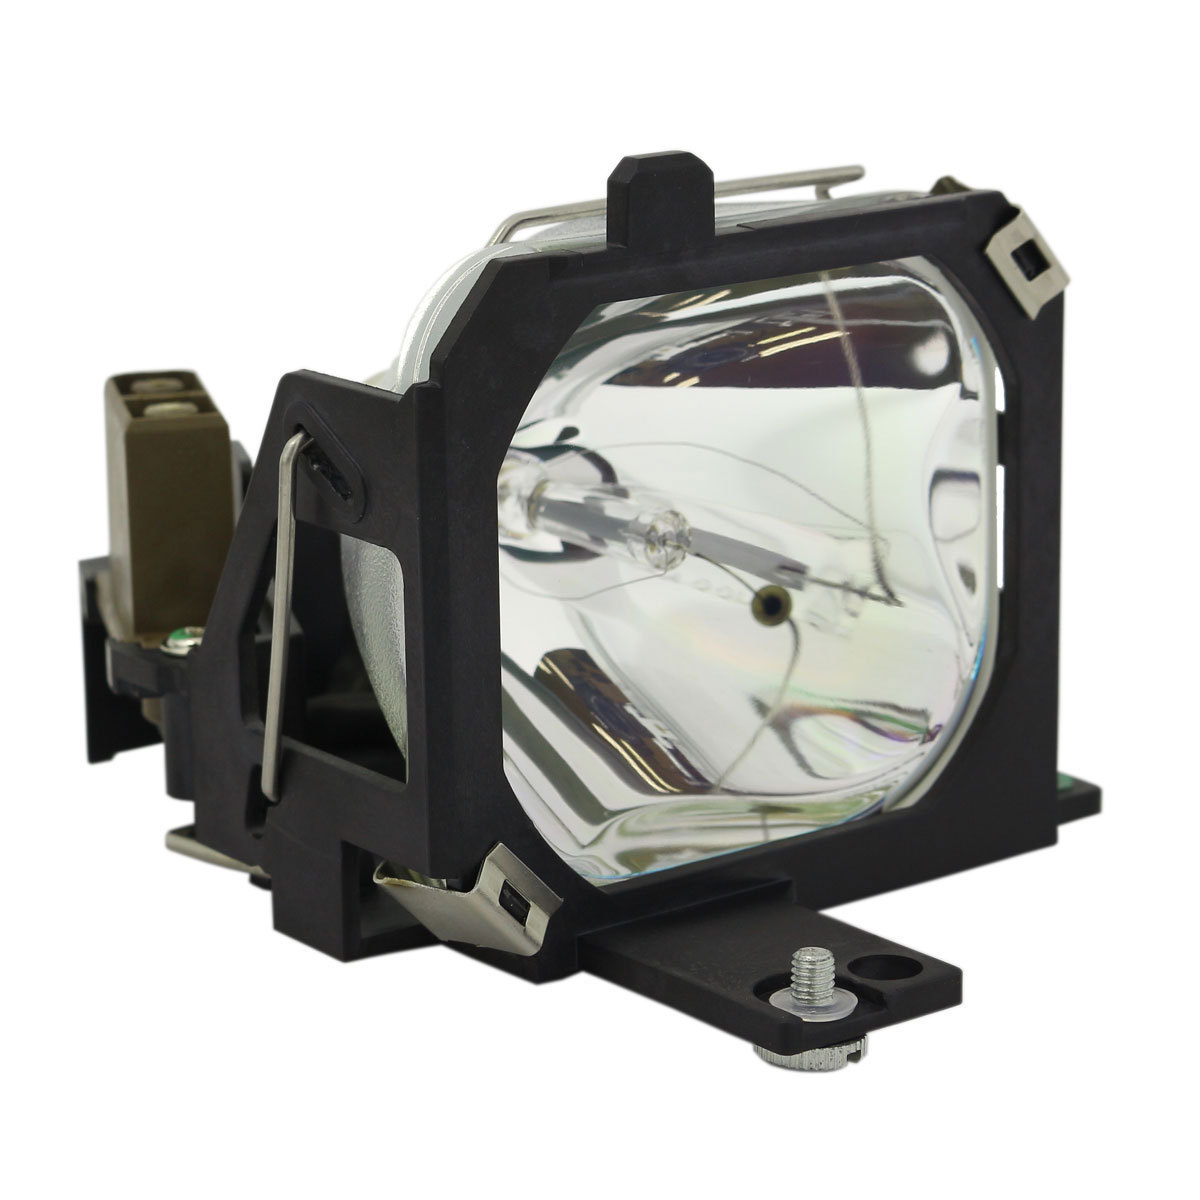 Primary image for Geha 60-246697 Osram Projector Lamp Module